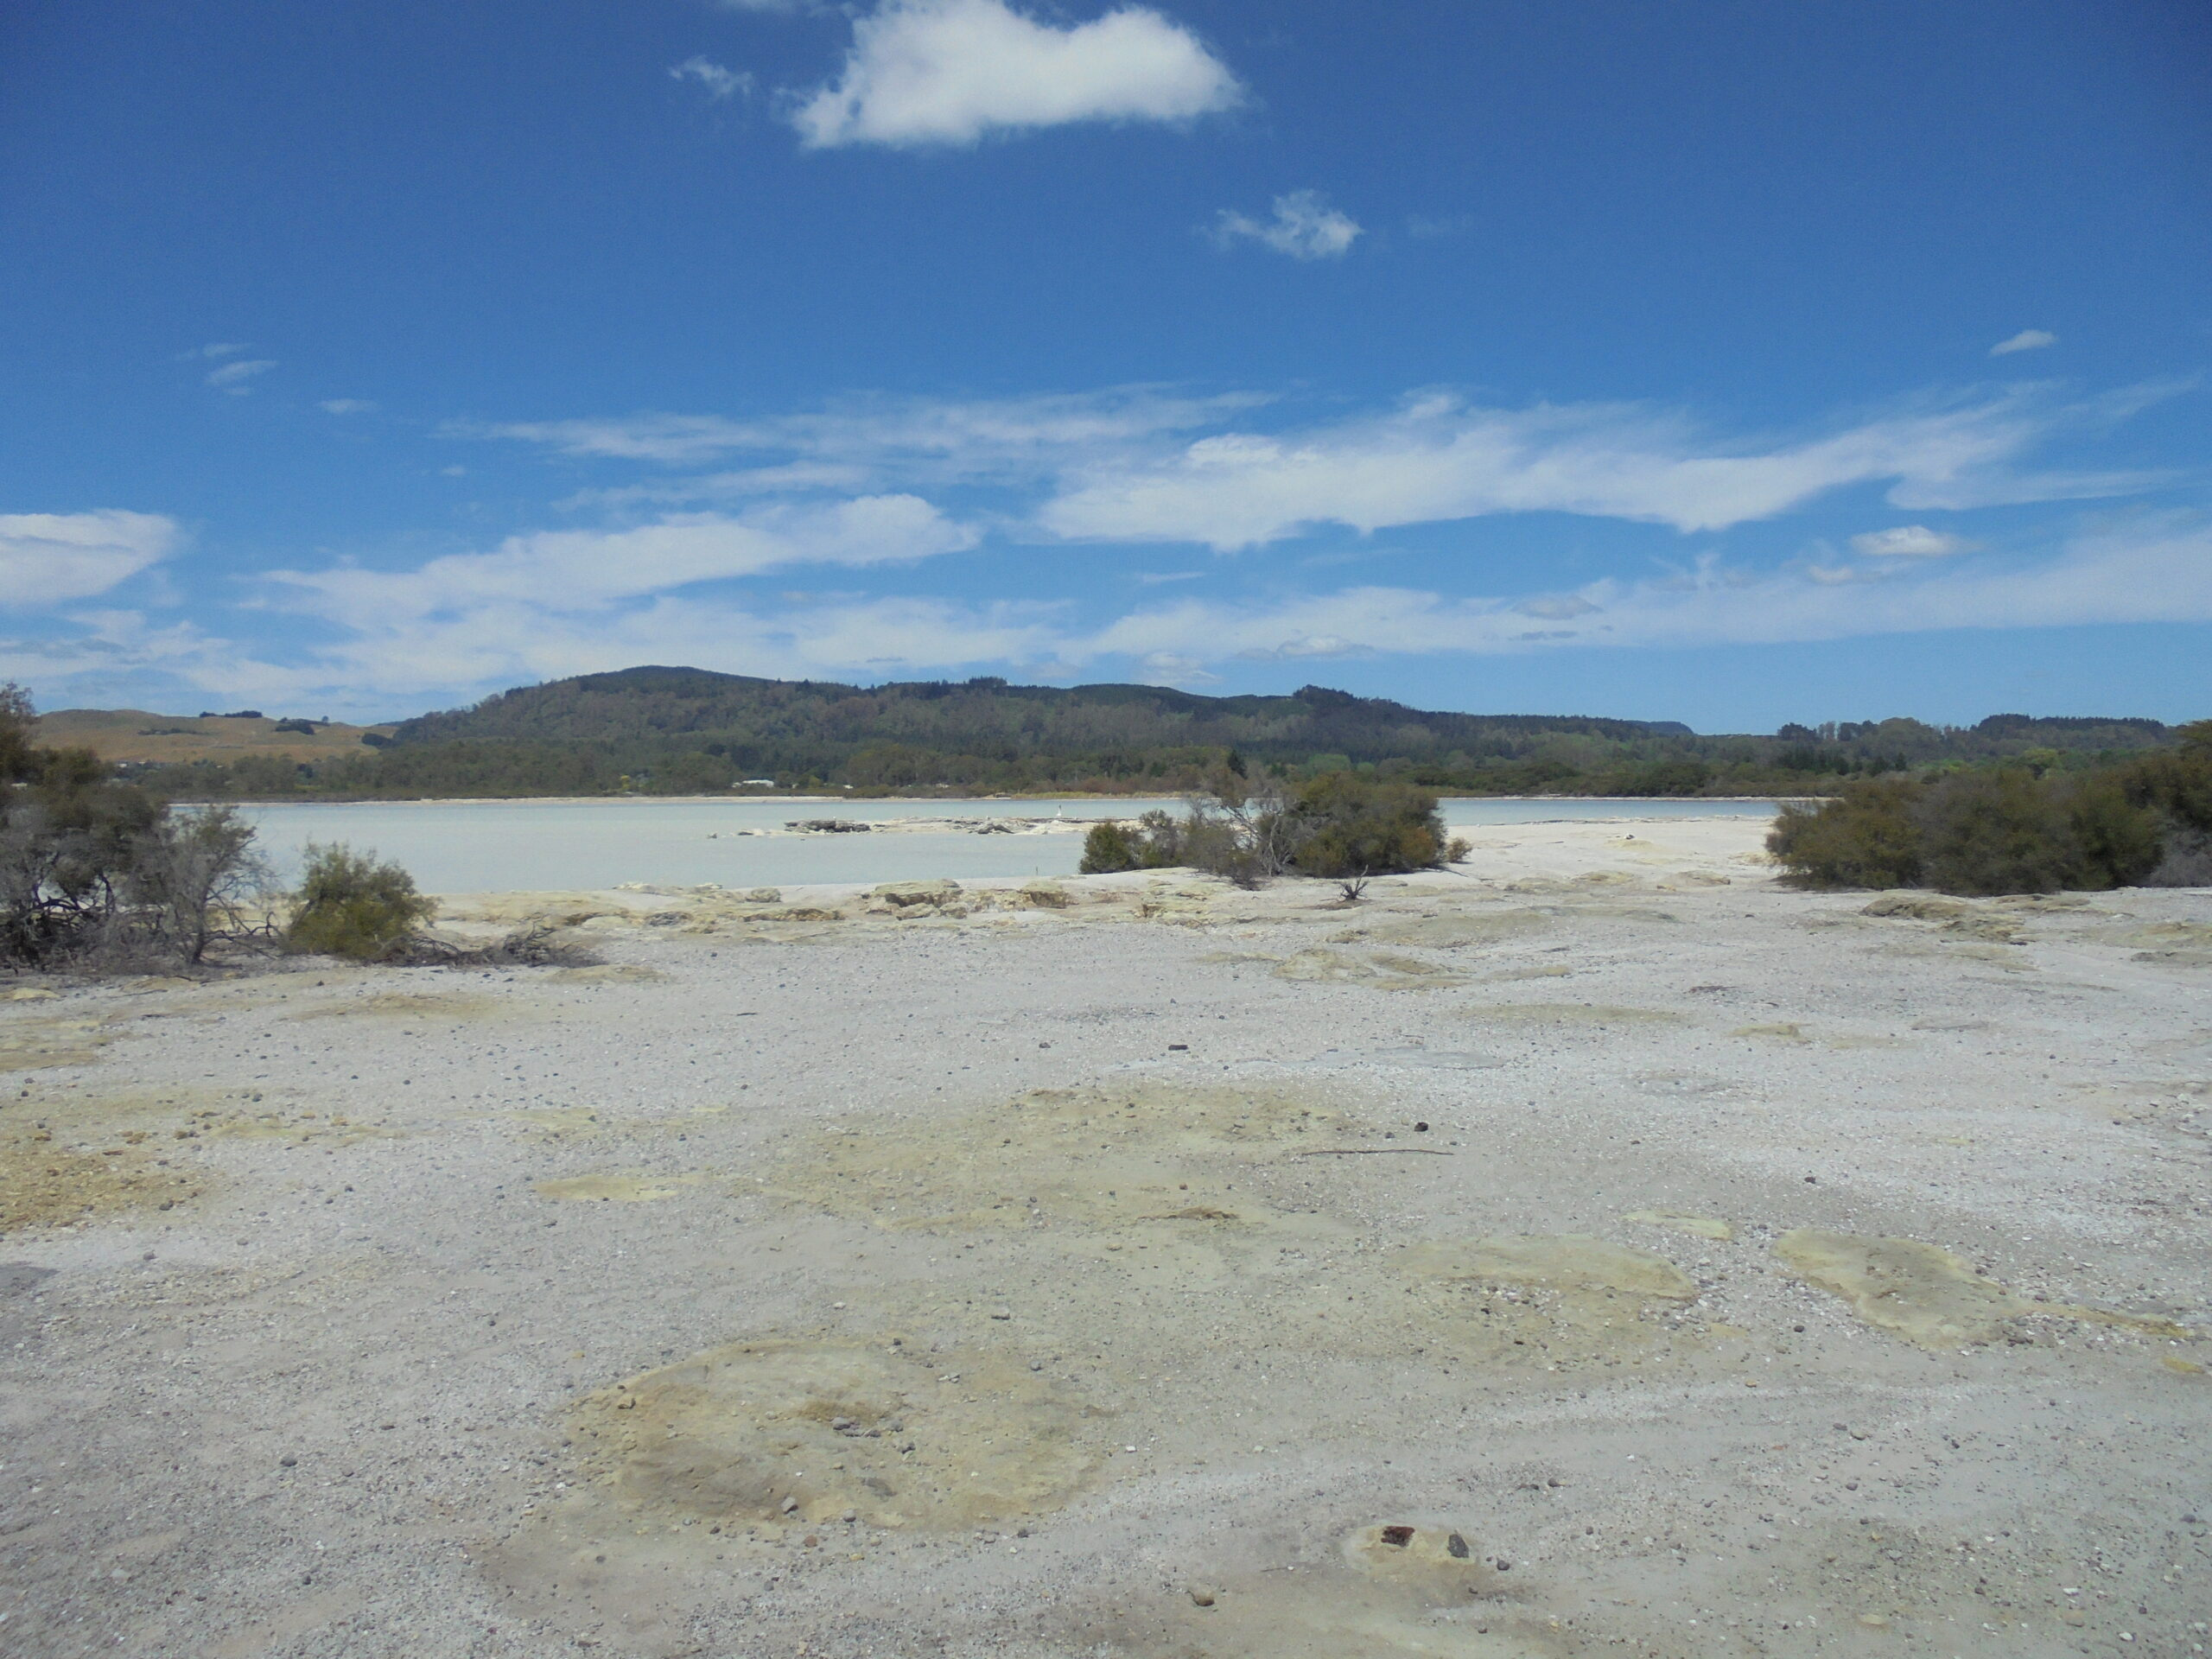 The view from Sulphur Point in Rotorua, overlooking Lake Rotorua. The yellow colour in the foreground is deposits of elemental sulphur, produced by the local volcanic activity near this town.